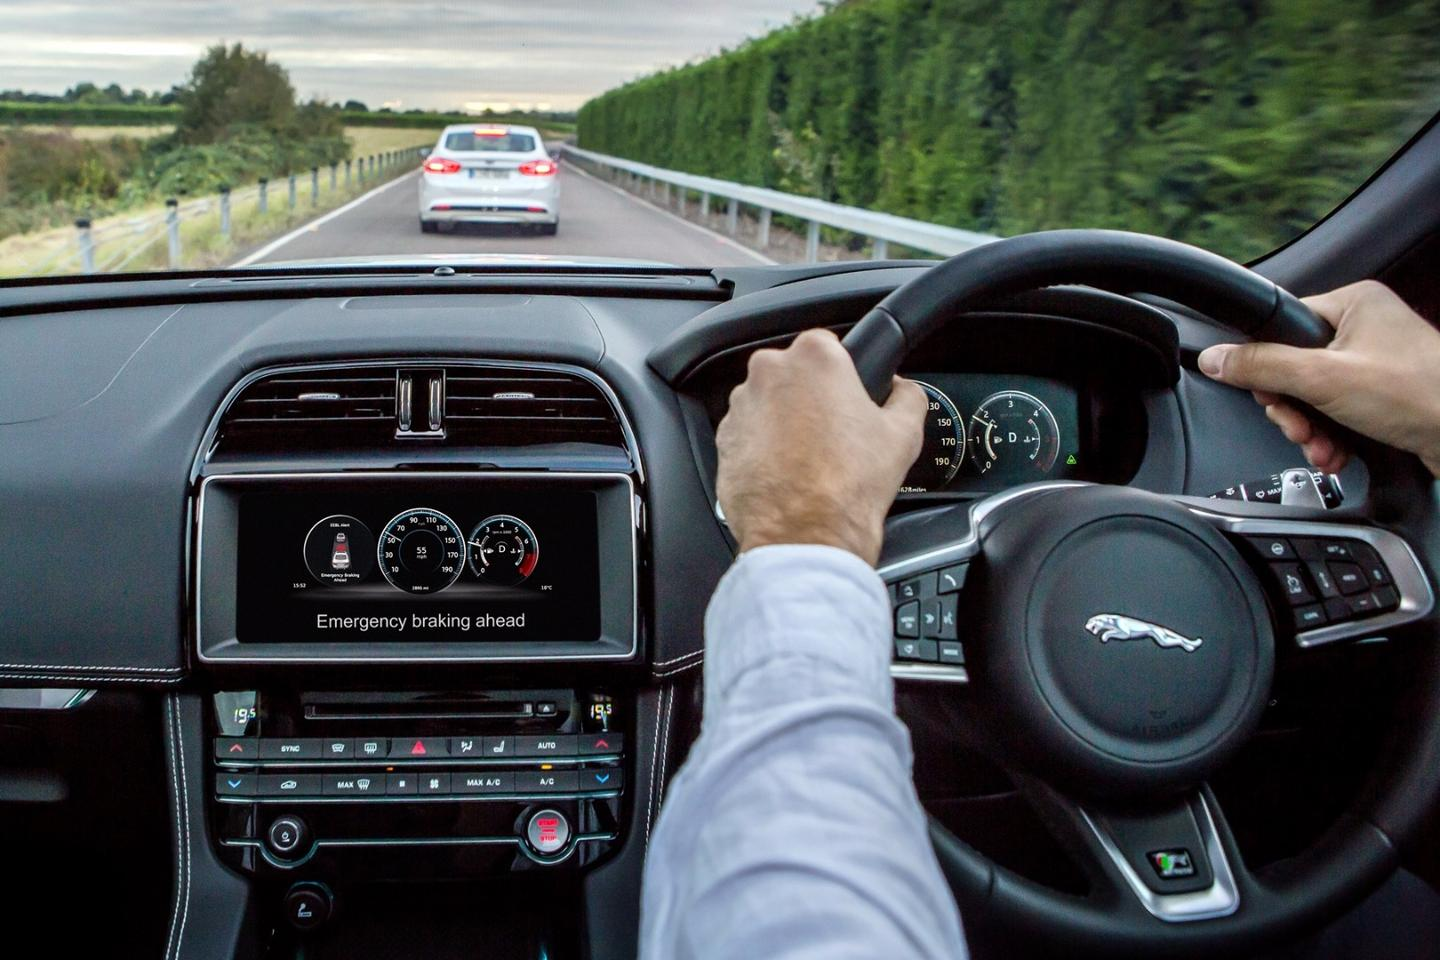 The demonstration was the culmination of a first set of connected car trials as part of the UK Autodrive project